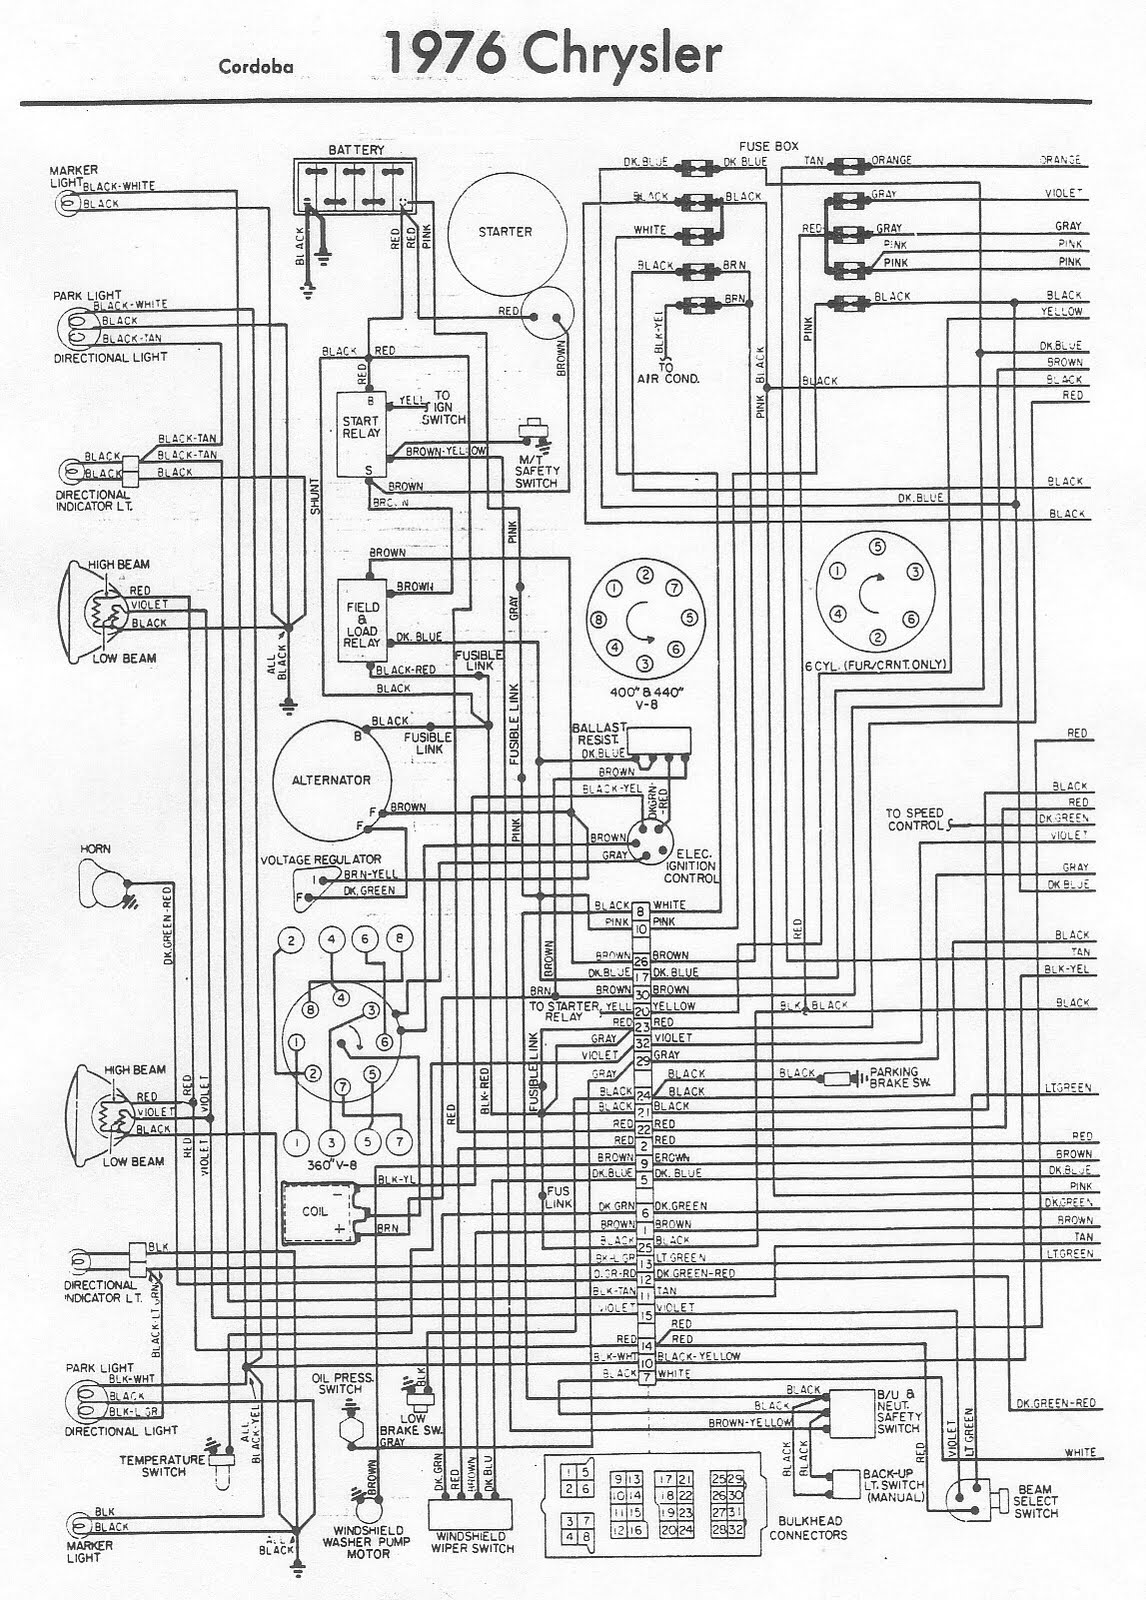 wiring diagrams 1978 chrysler new yorker - wiring diagram schema  pose-track-a - pose-track-a.atmosphereconcept.it  atmosphereconcept.it